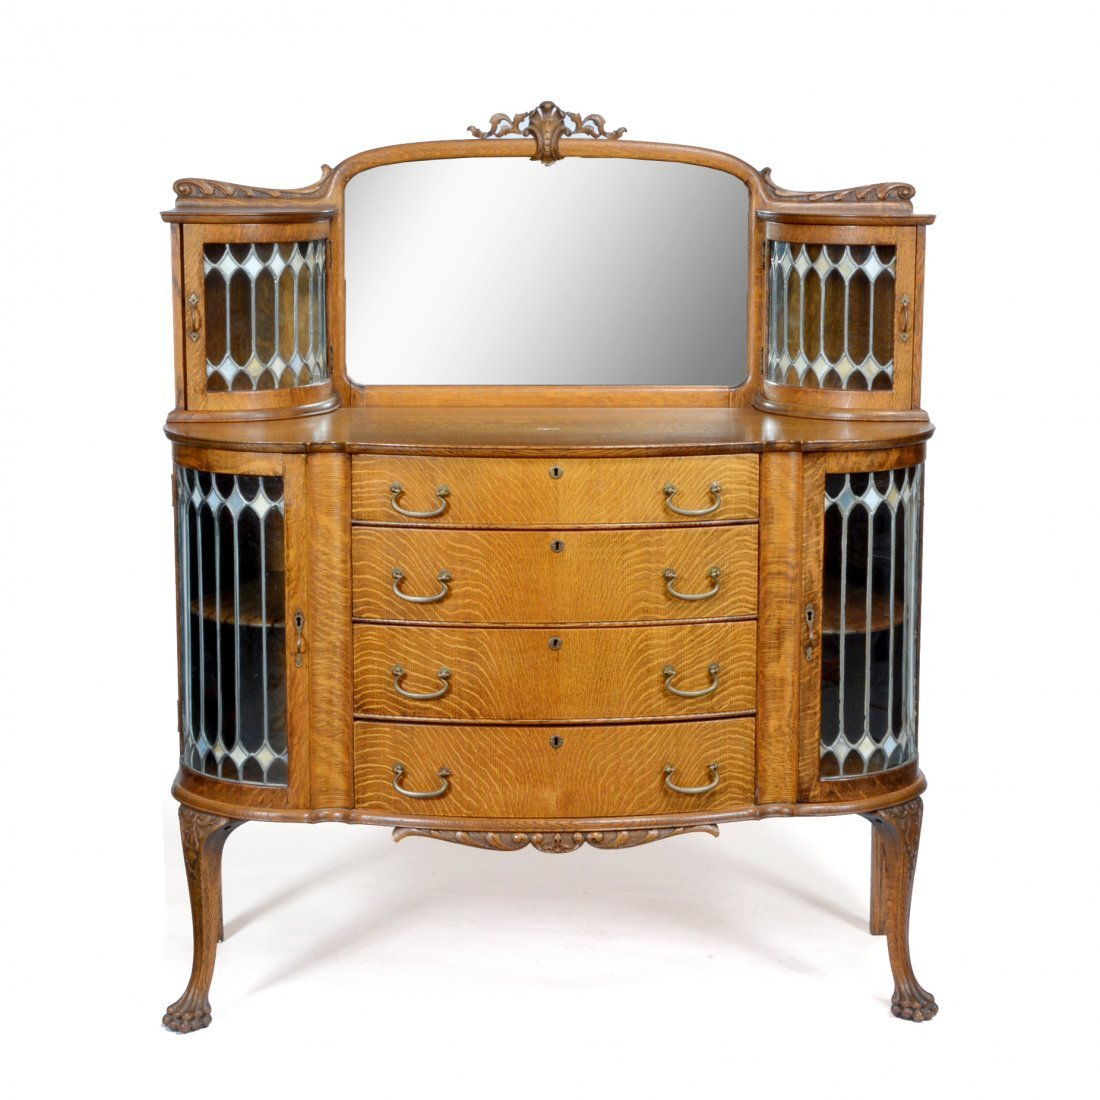 Victorian oak bow-front buffet, stained & leaded glass